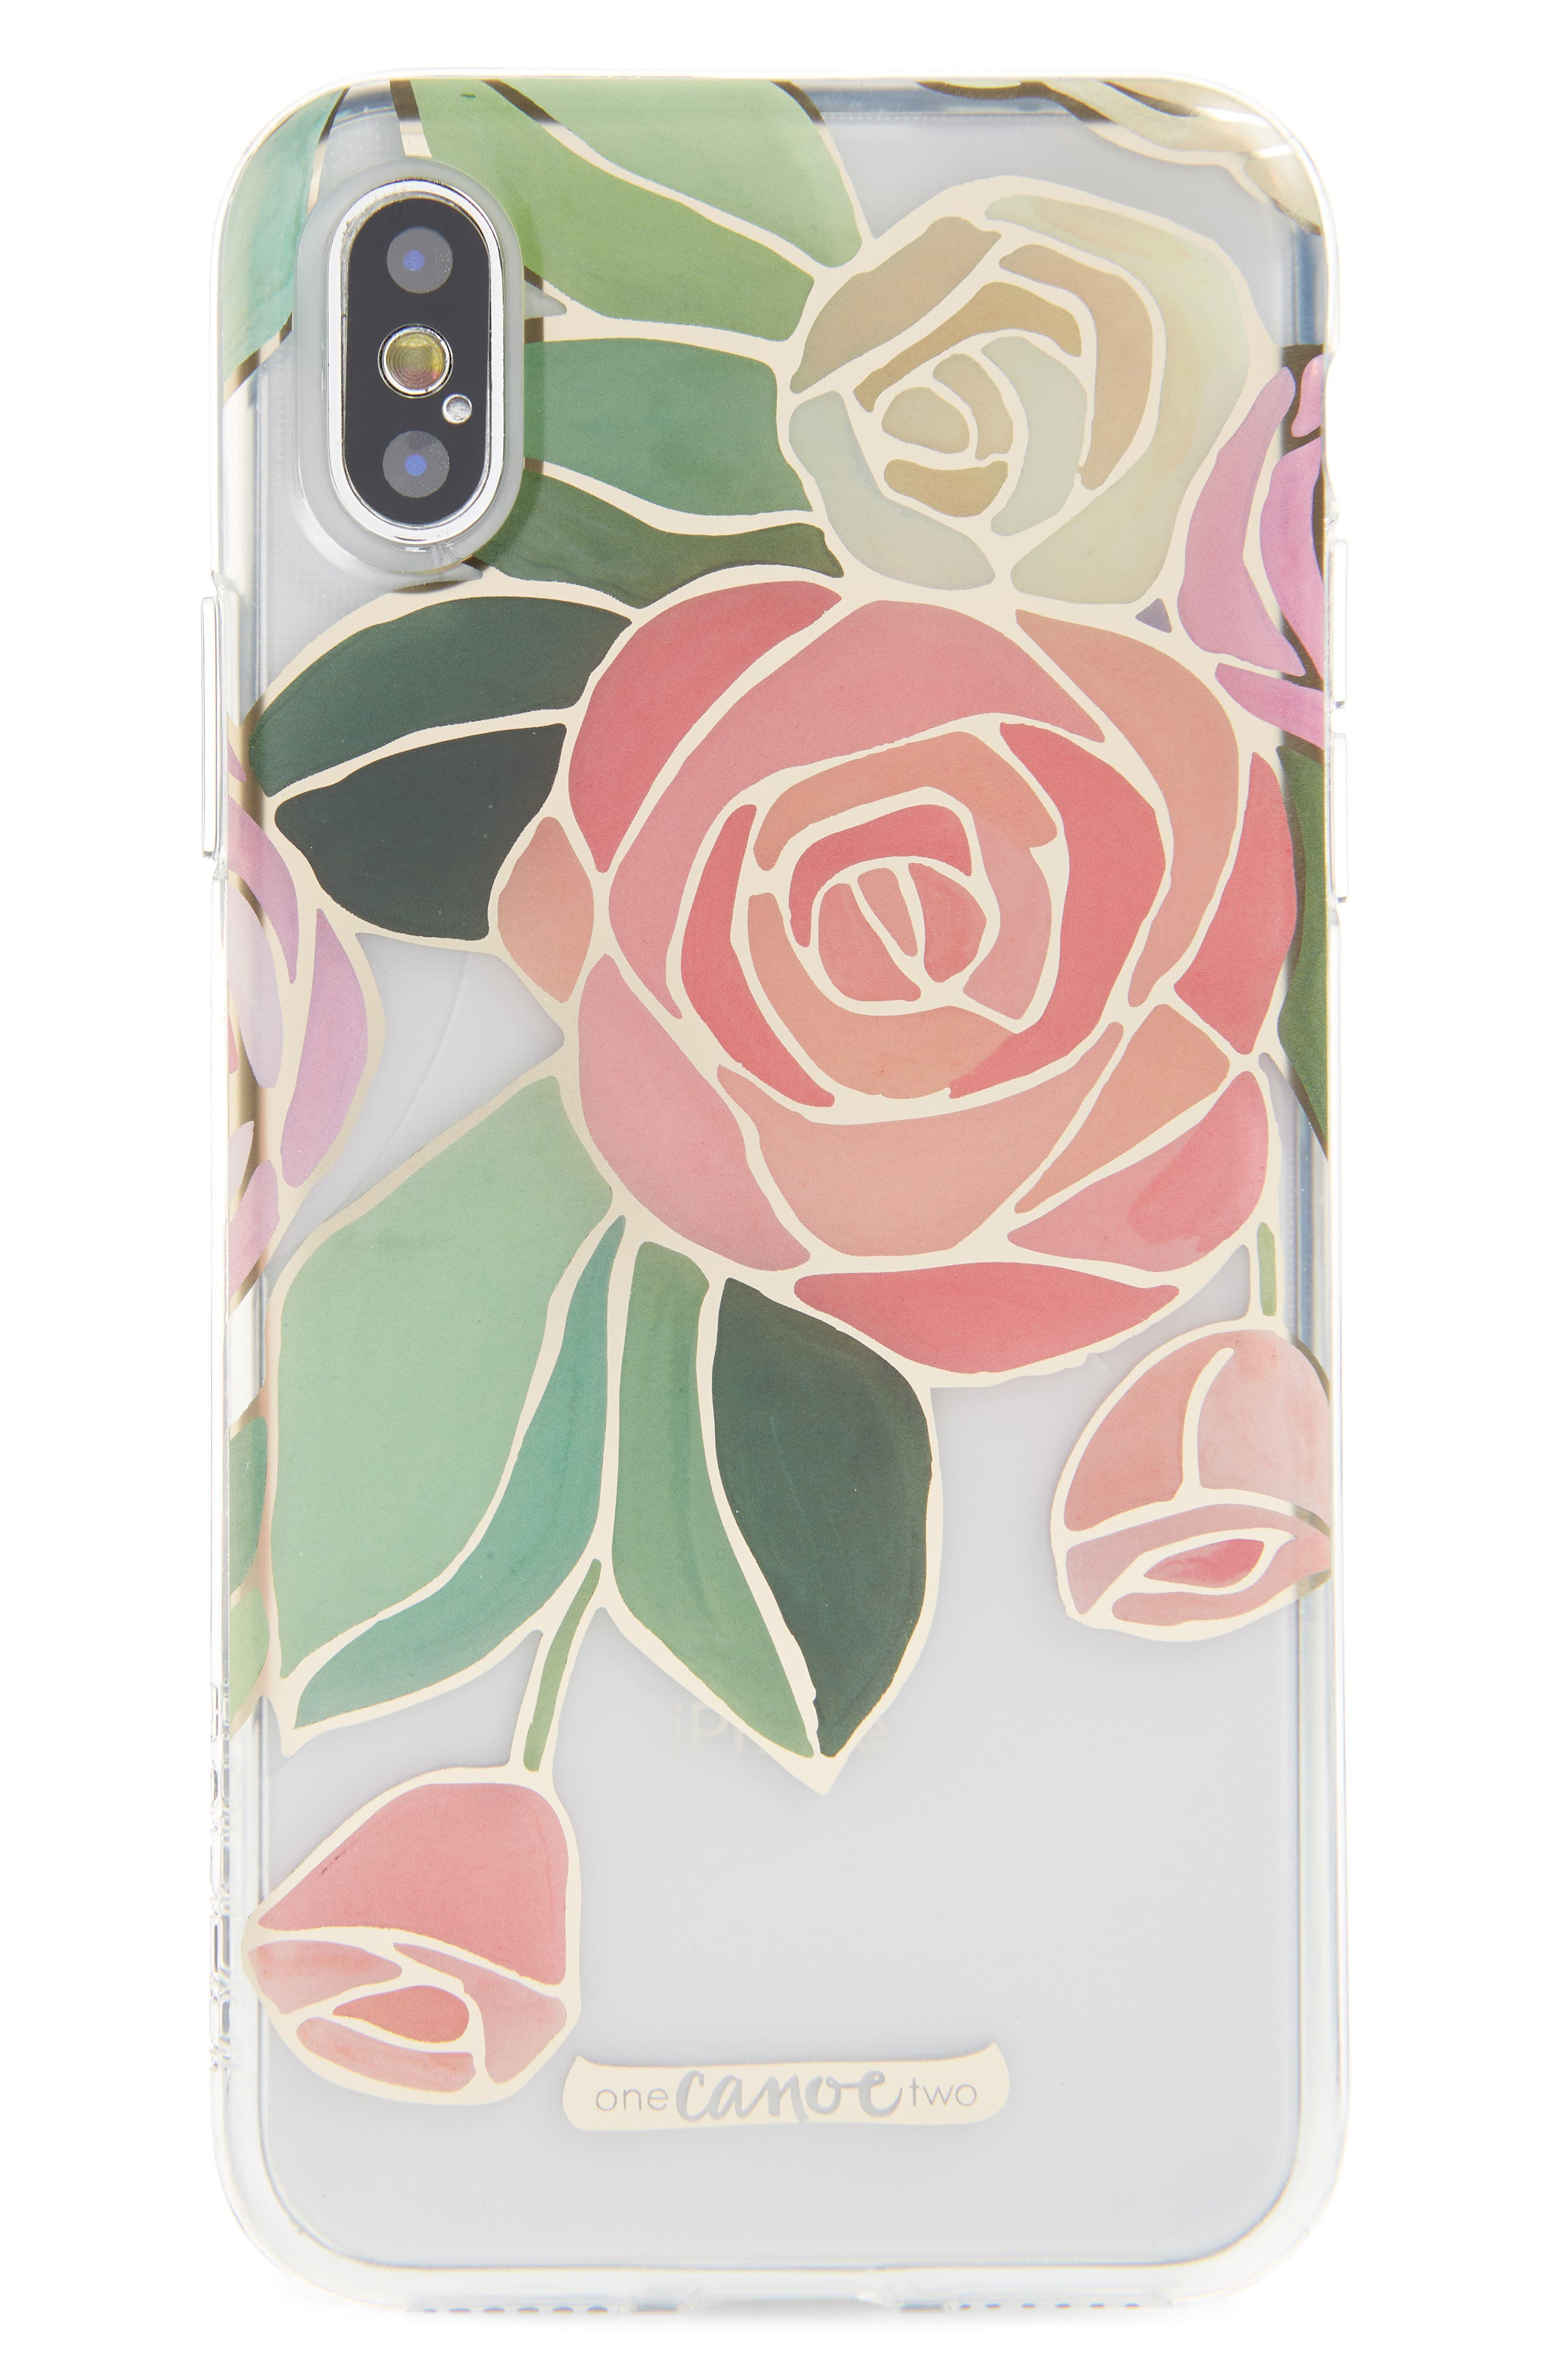 One Canoe Two Roses iPhone X/Xs Case,                         Main,                         color, 650